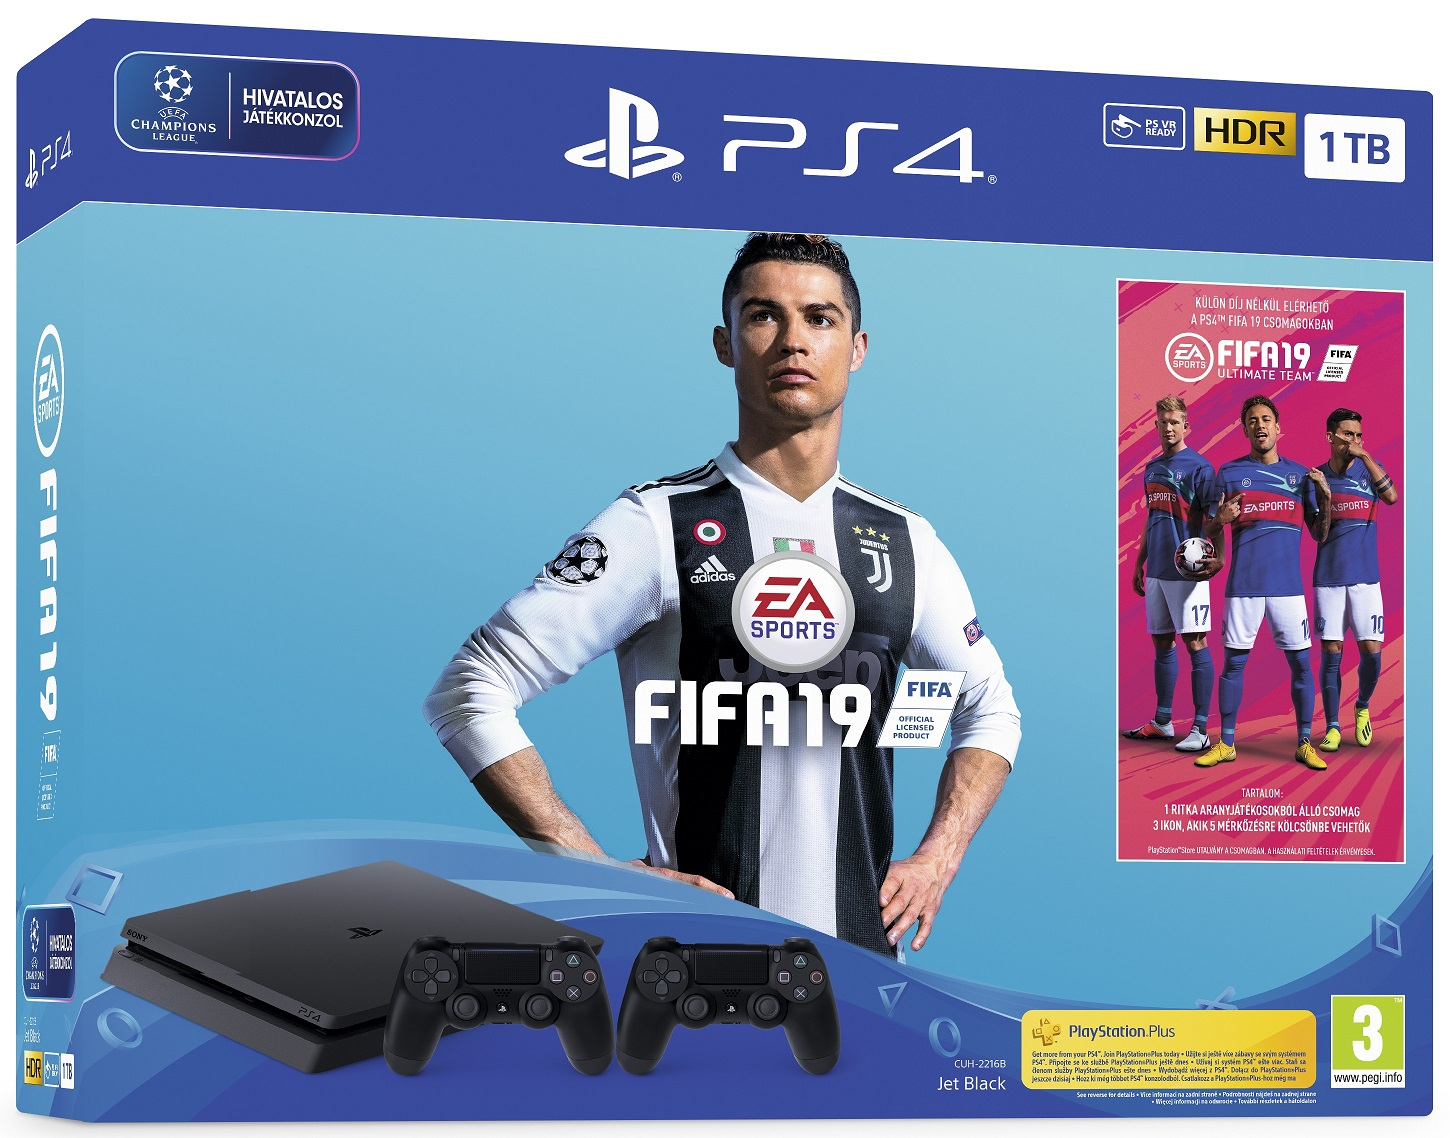 Sony PlayStation 4 Slim 1TB (PS4) + Fifa 19 + extra Dualshock 4 Controller